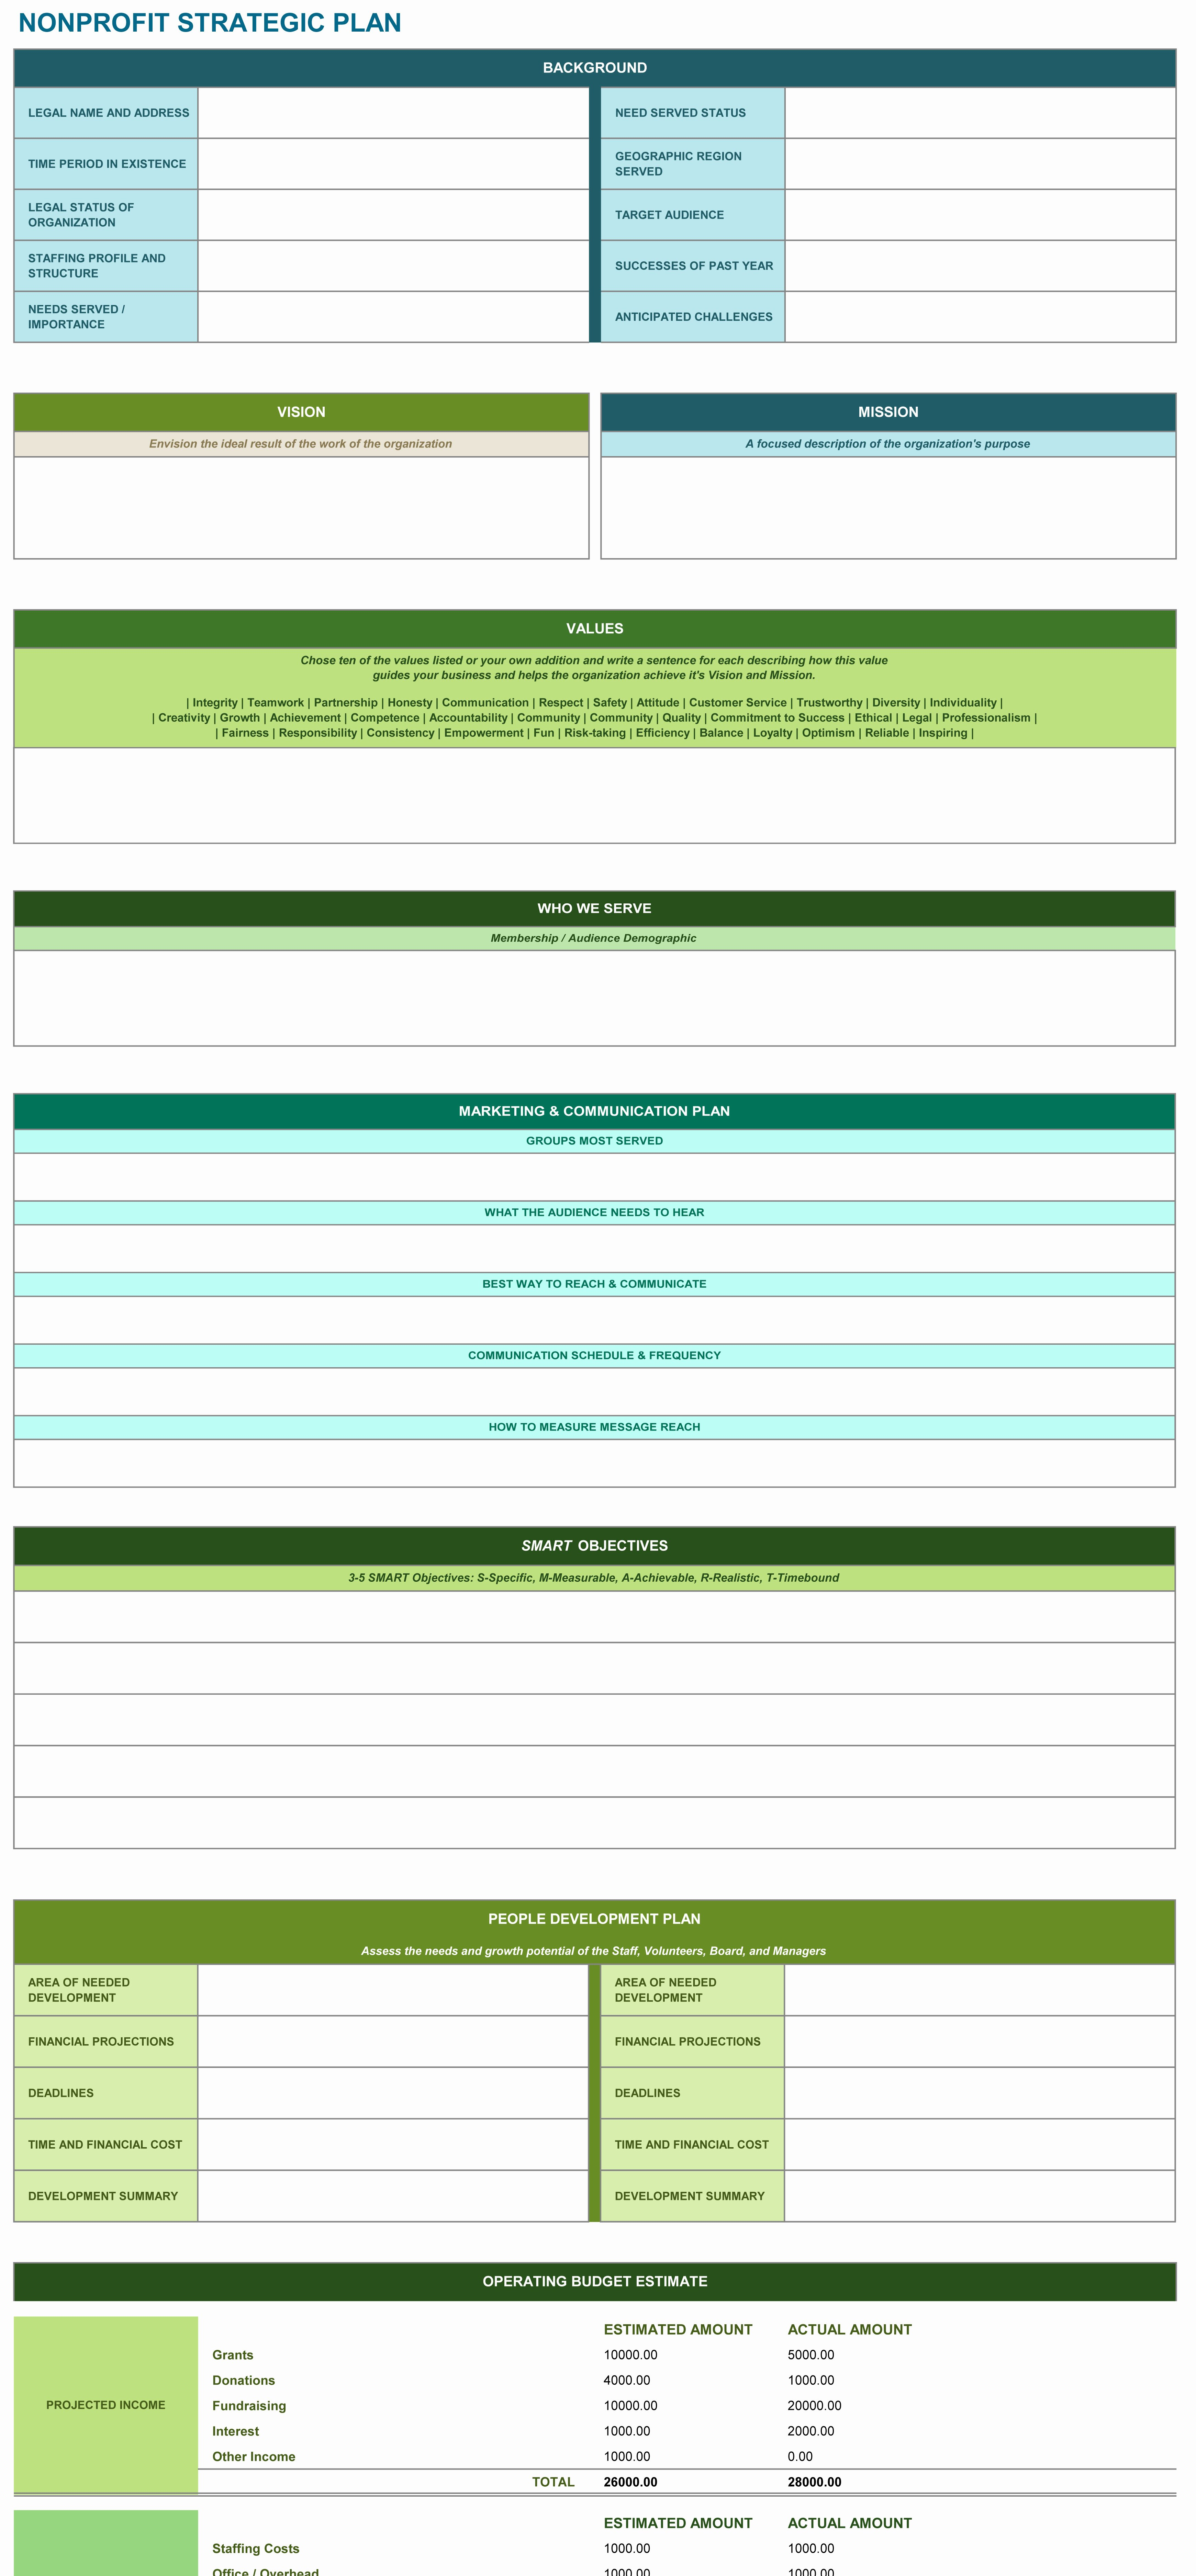 Strategic Planning for Nonprofits Template Awesome 9 Free Strategic Planning Templates Smartsheet